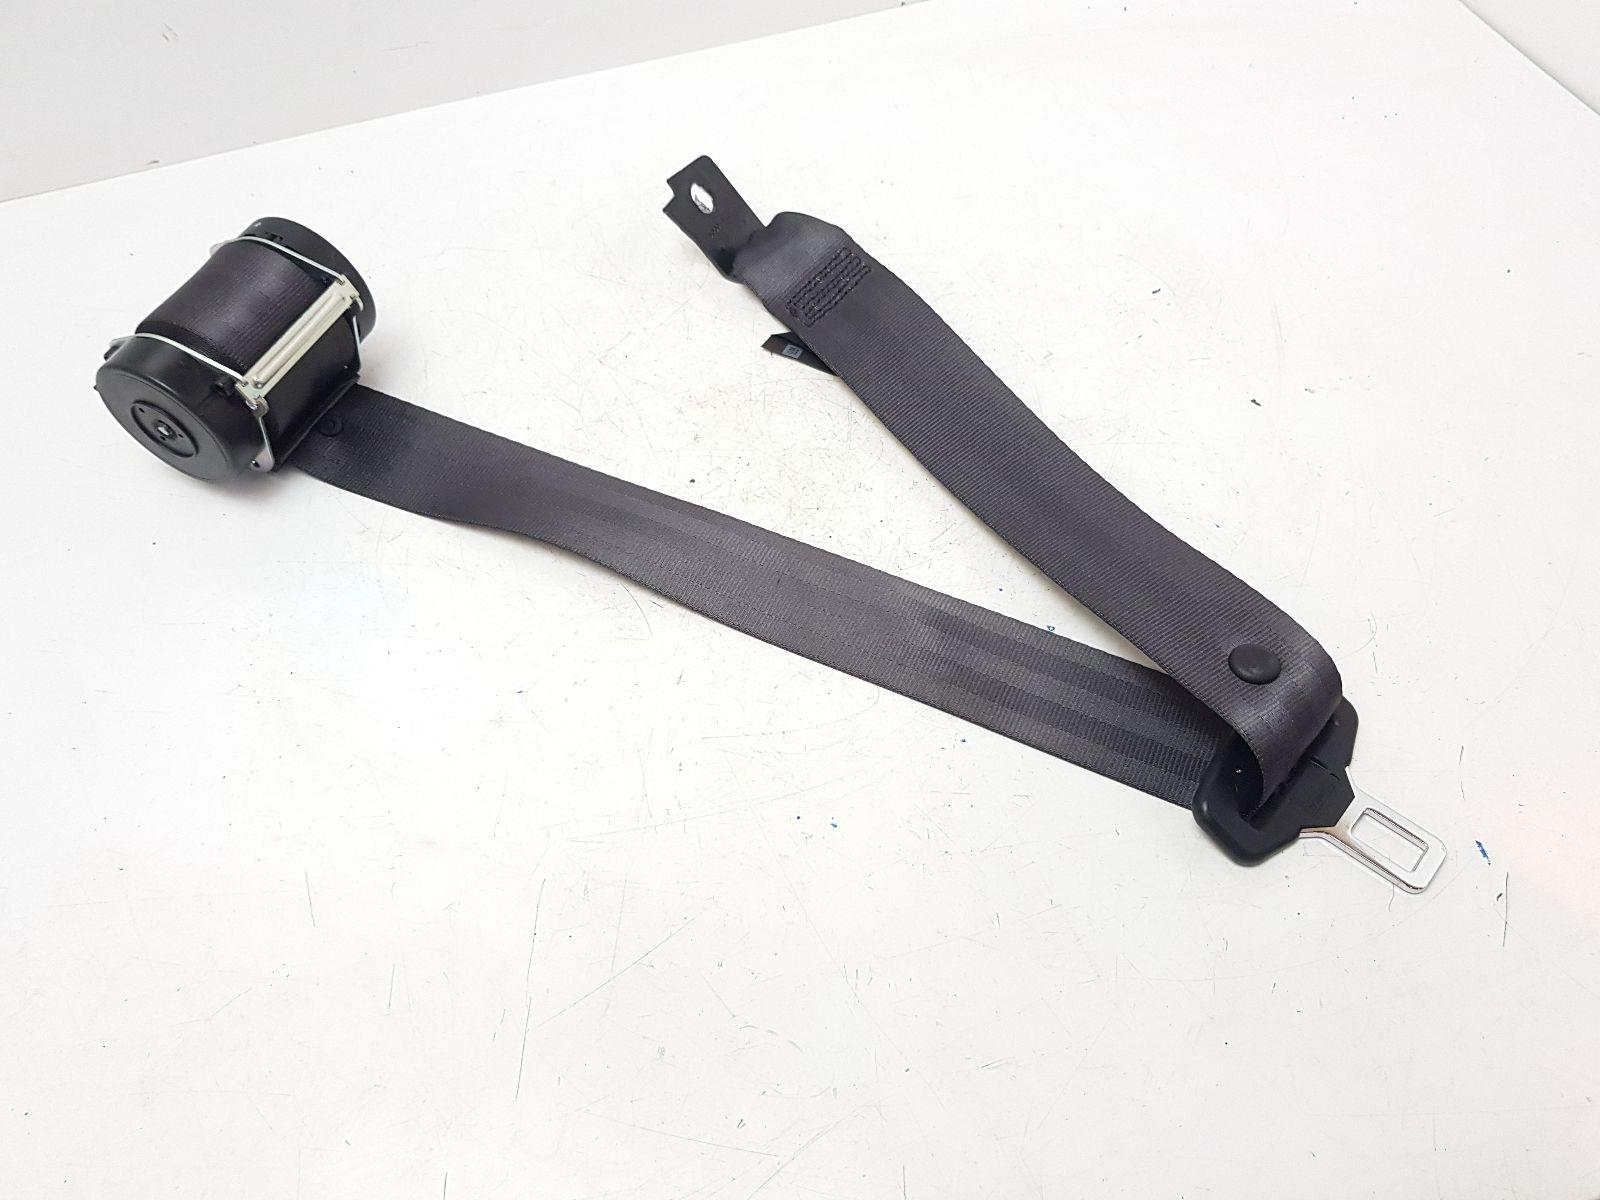 2006-2014 MK3 Vauxhall Corsa D REAR CENTRE SEAT BELT 13436144 3 Door Hatchback